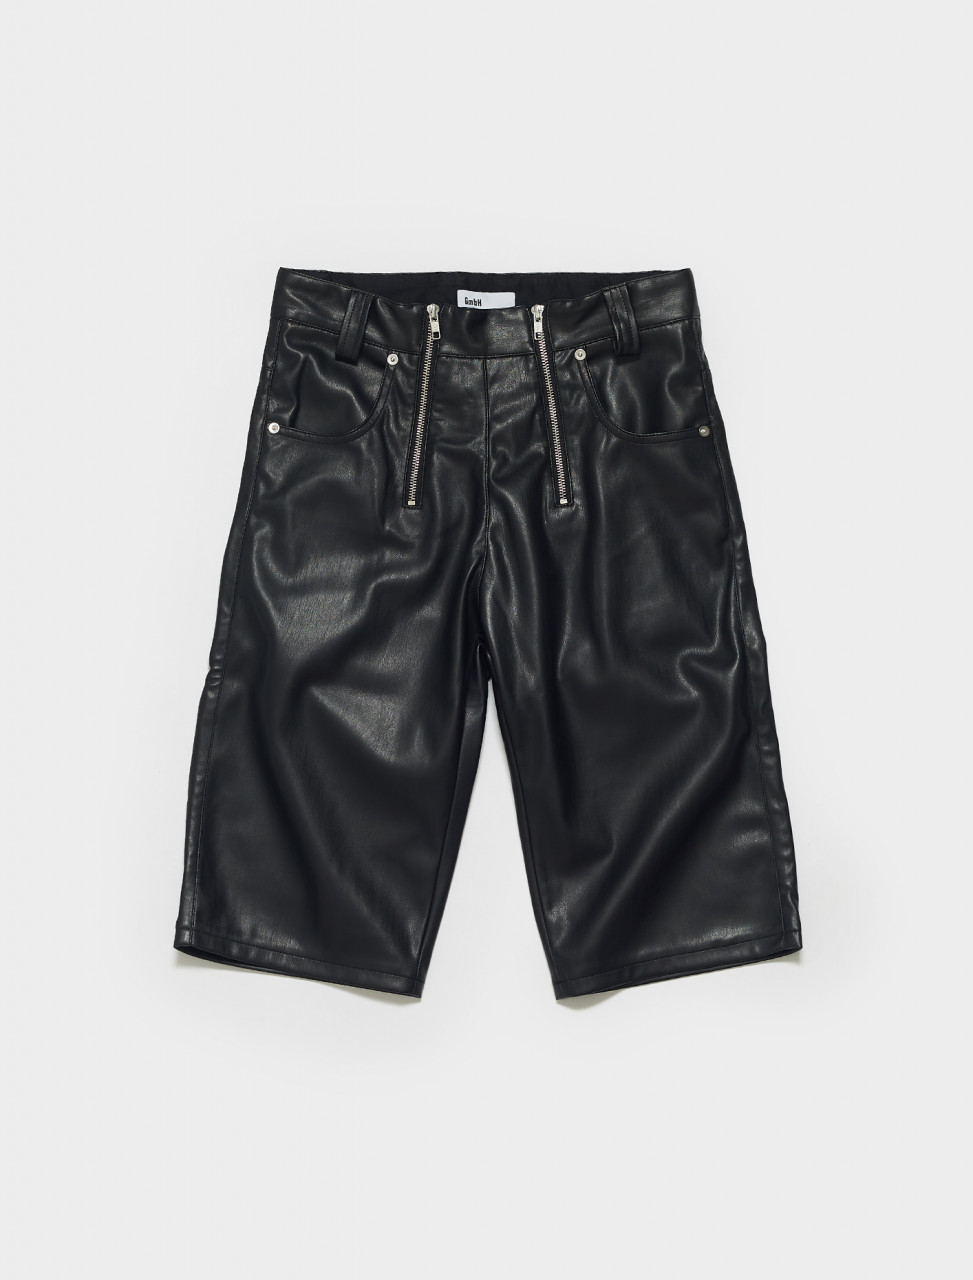 AMIR_LT_M-BLACK GMBH AMIR VEGAN SHORTS BLACK